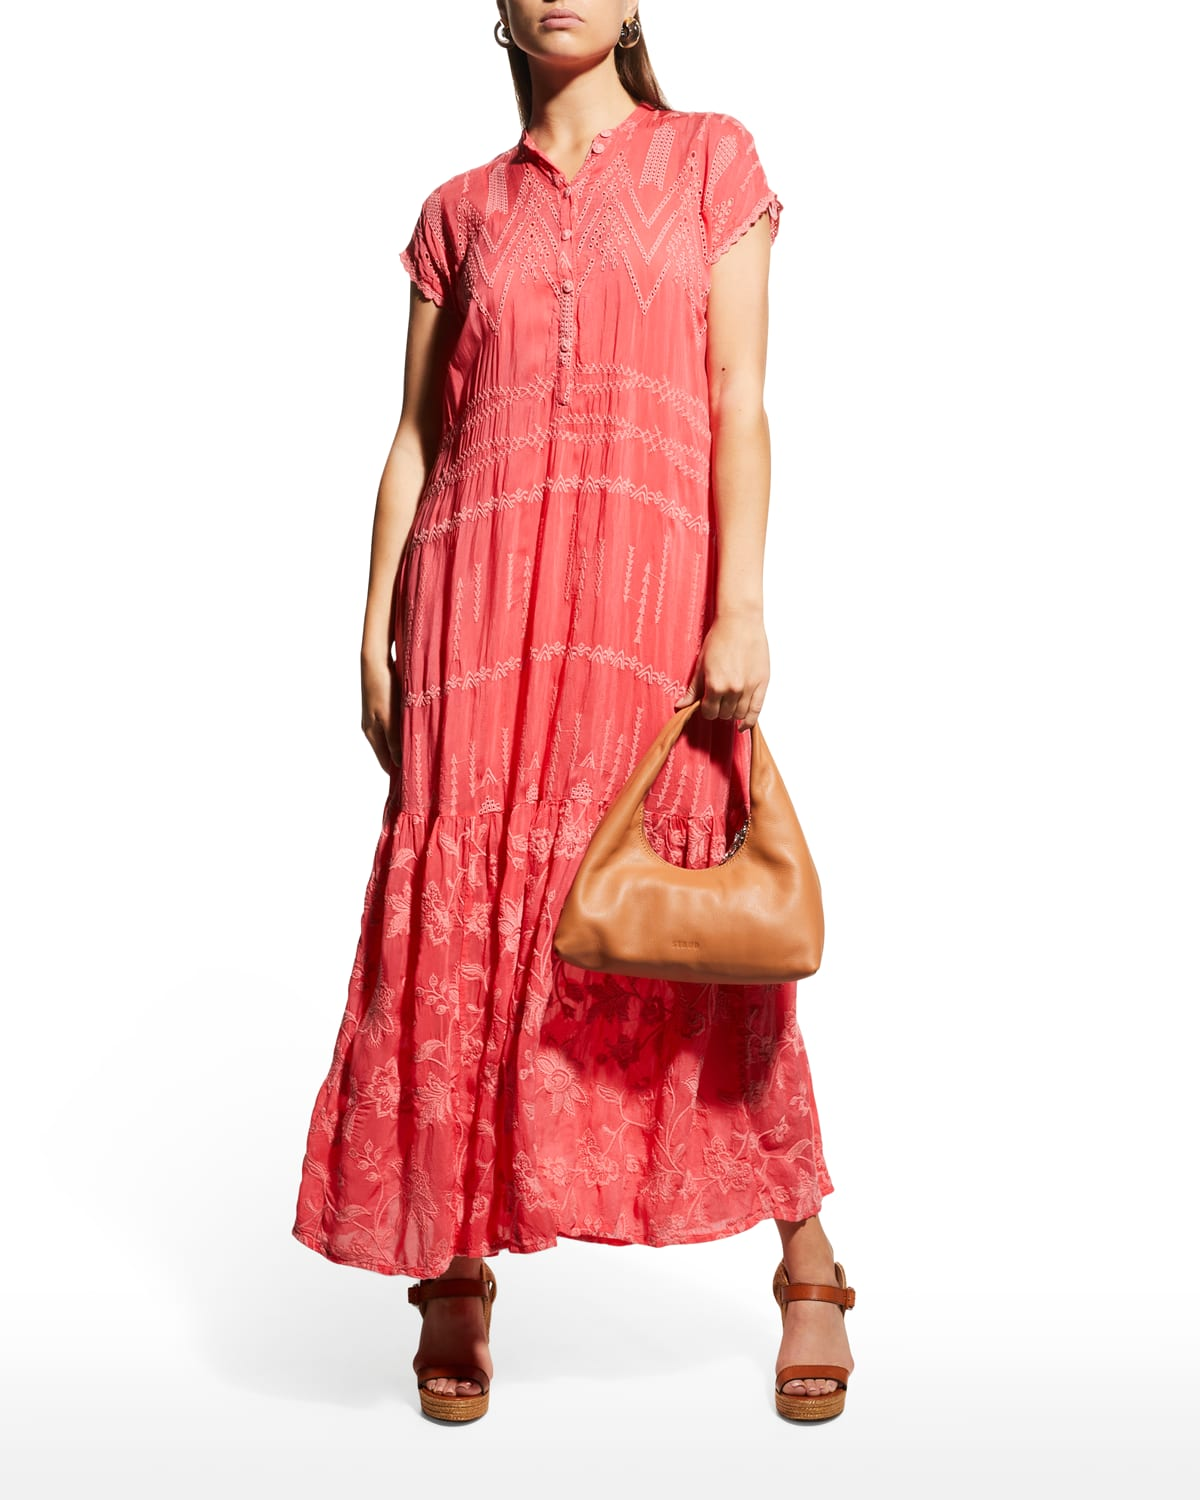 Aria Paityn Embroidered Maxi Dress